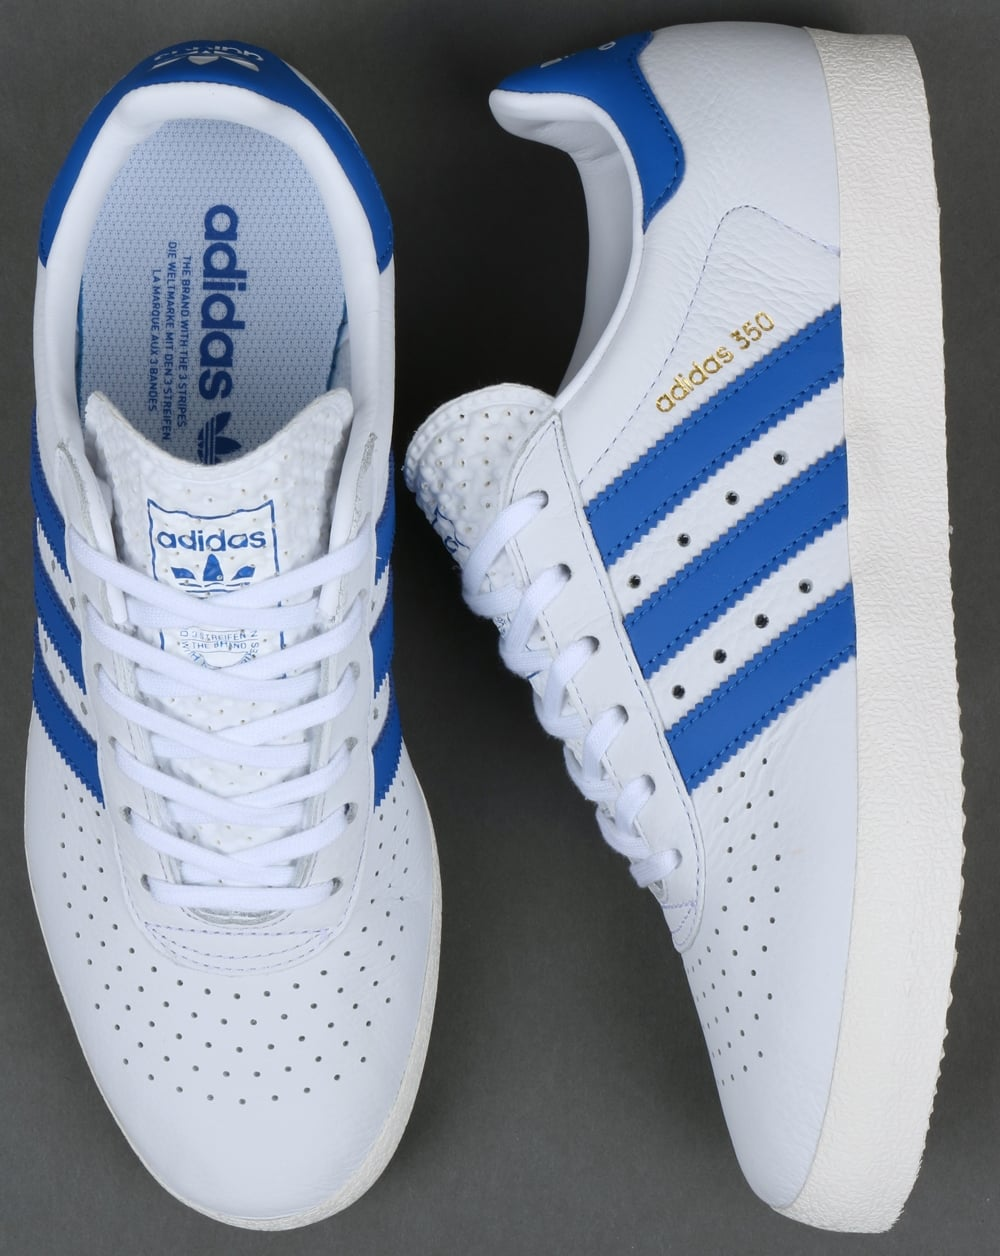 Adidas 350 Trainers White/Blue,leather